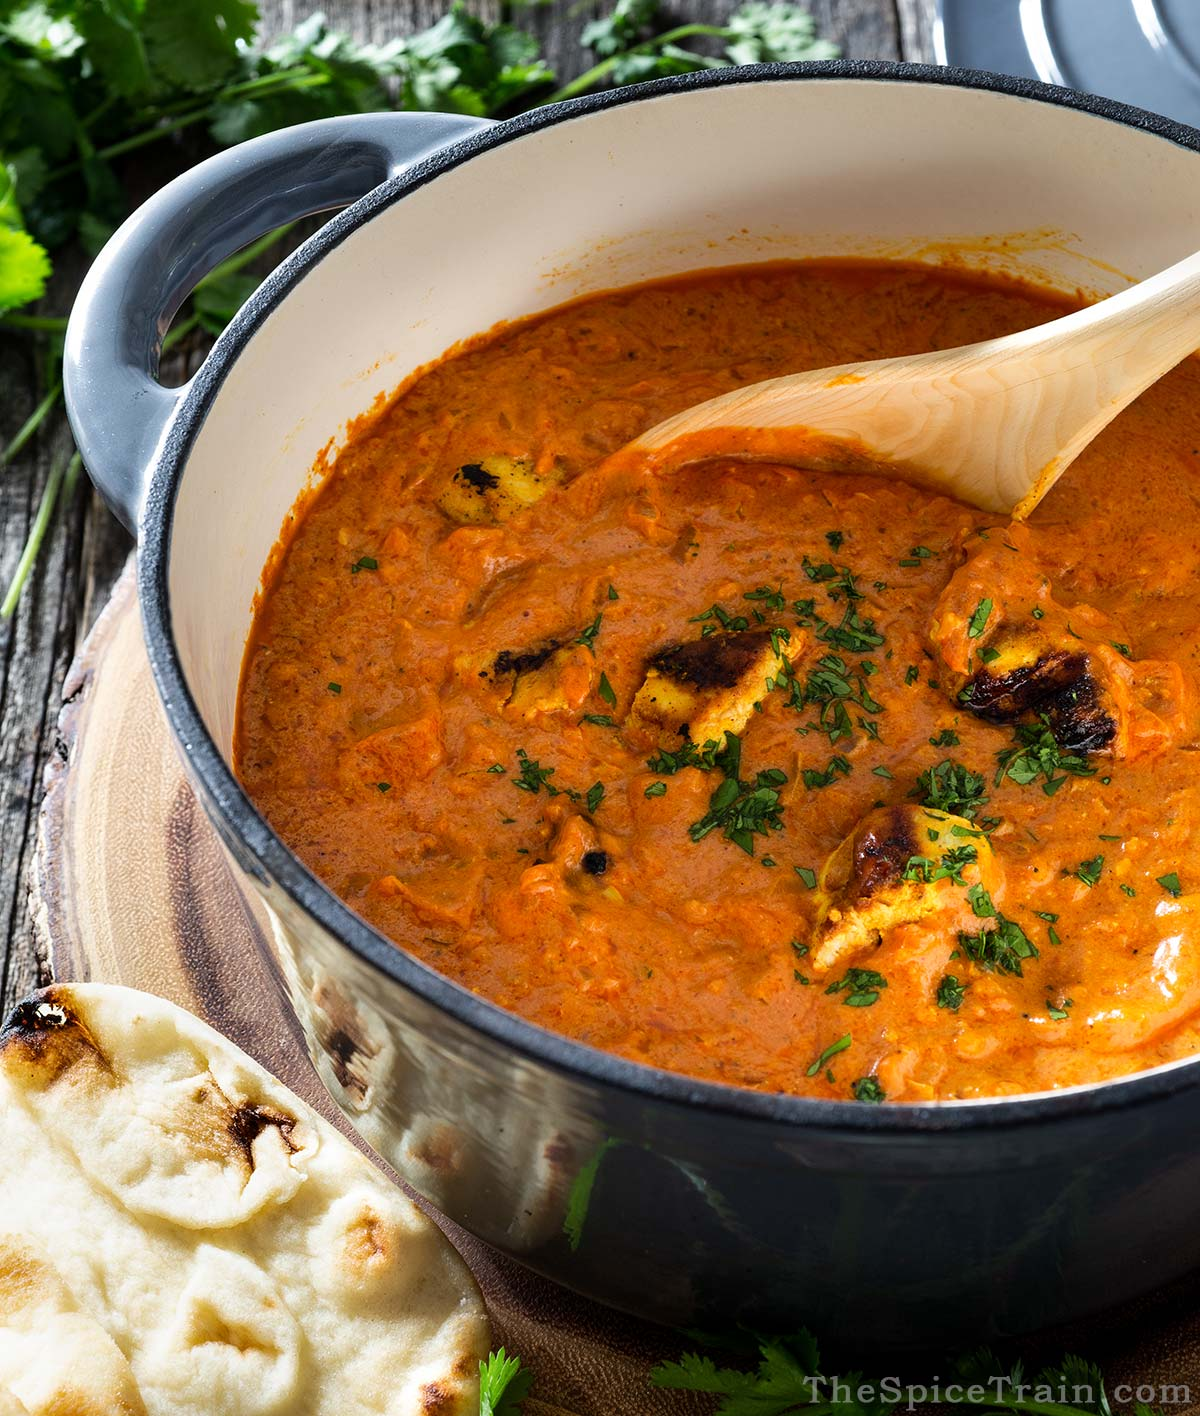 A Dutch oven filled with tikka masala curry, fresh cilantro and naan bread.